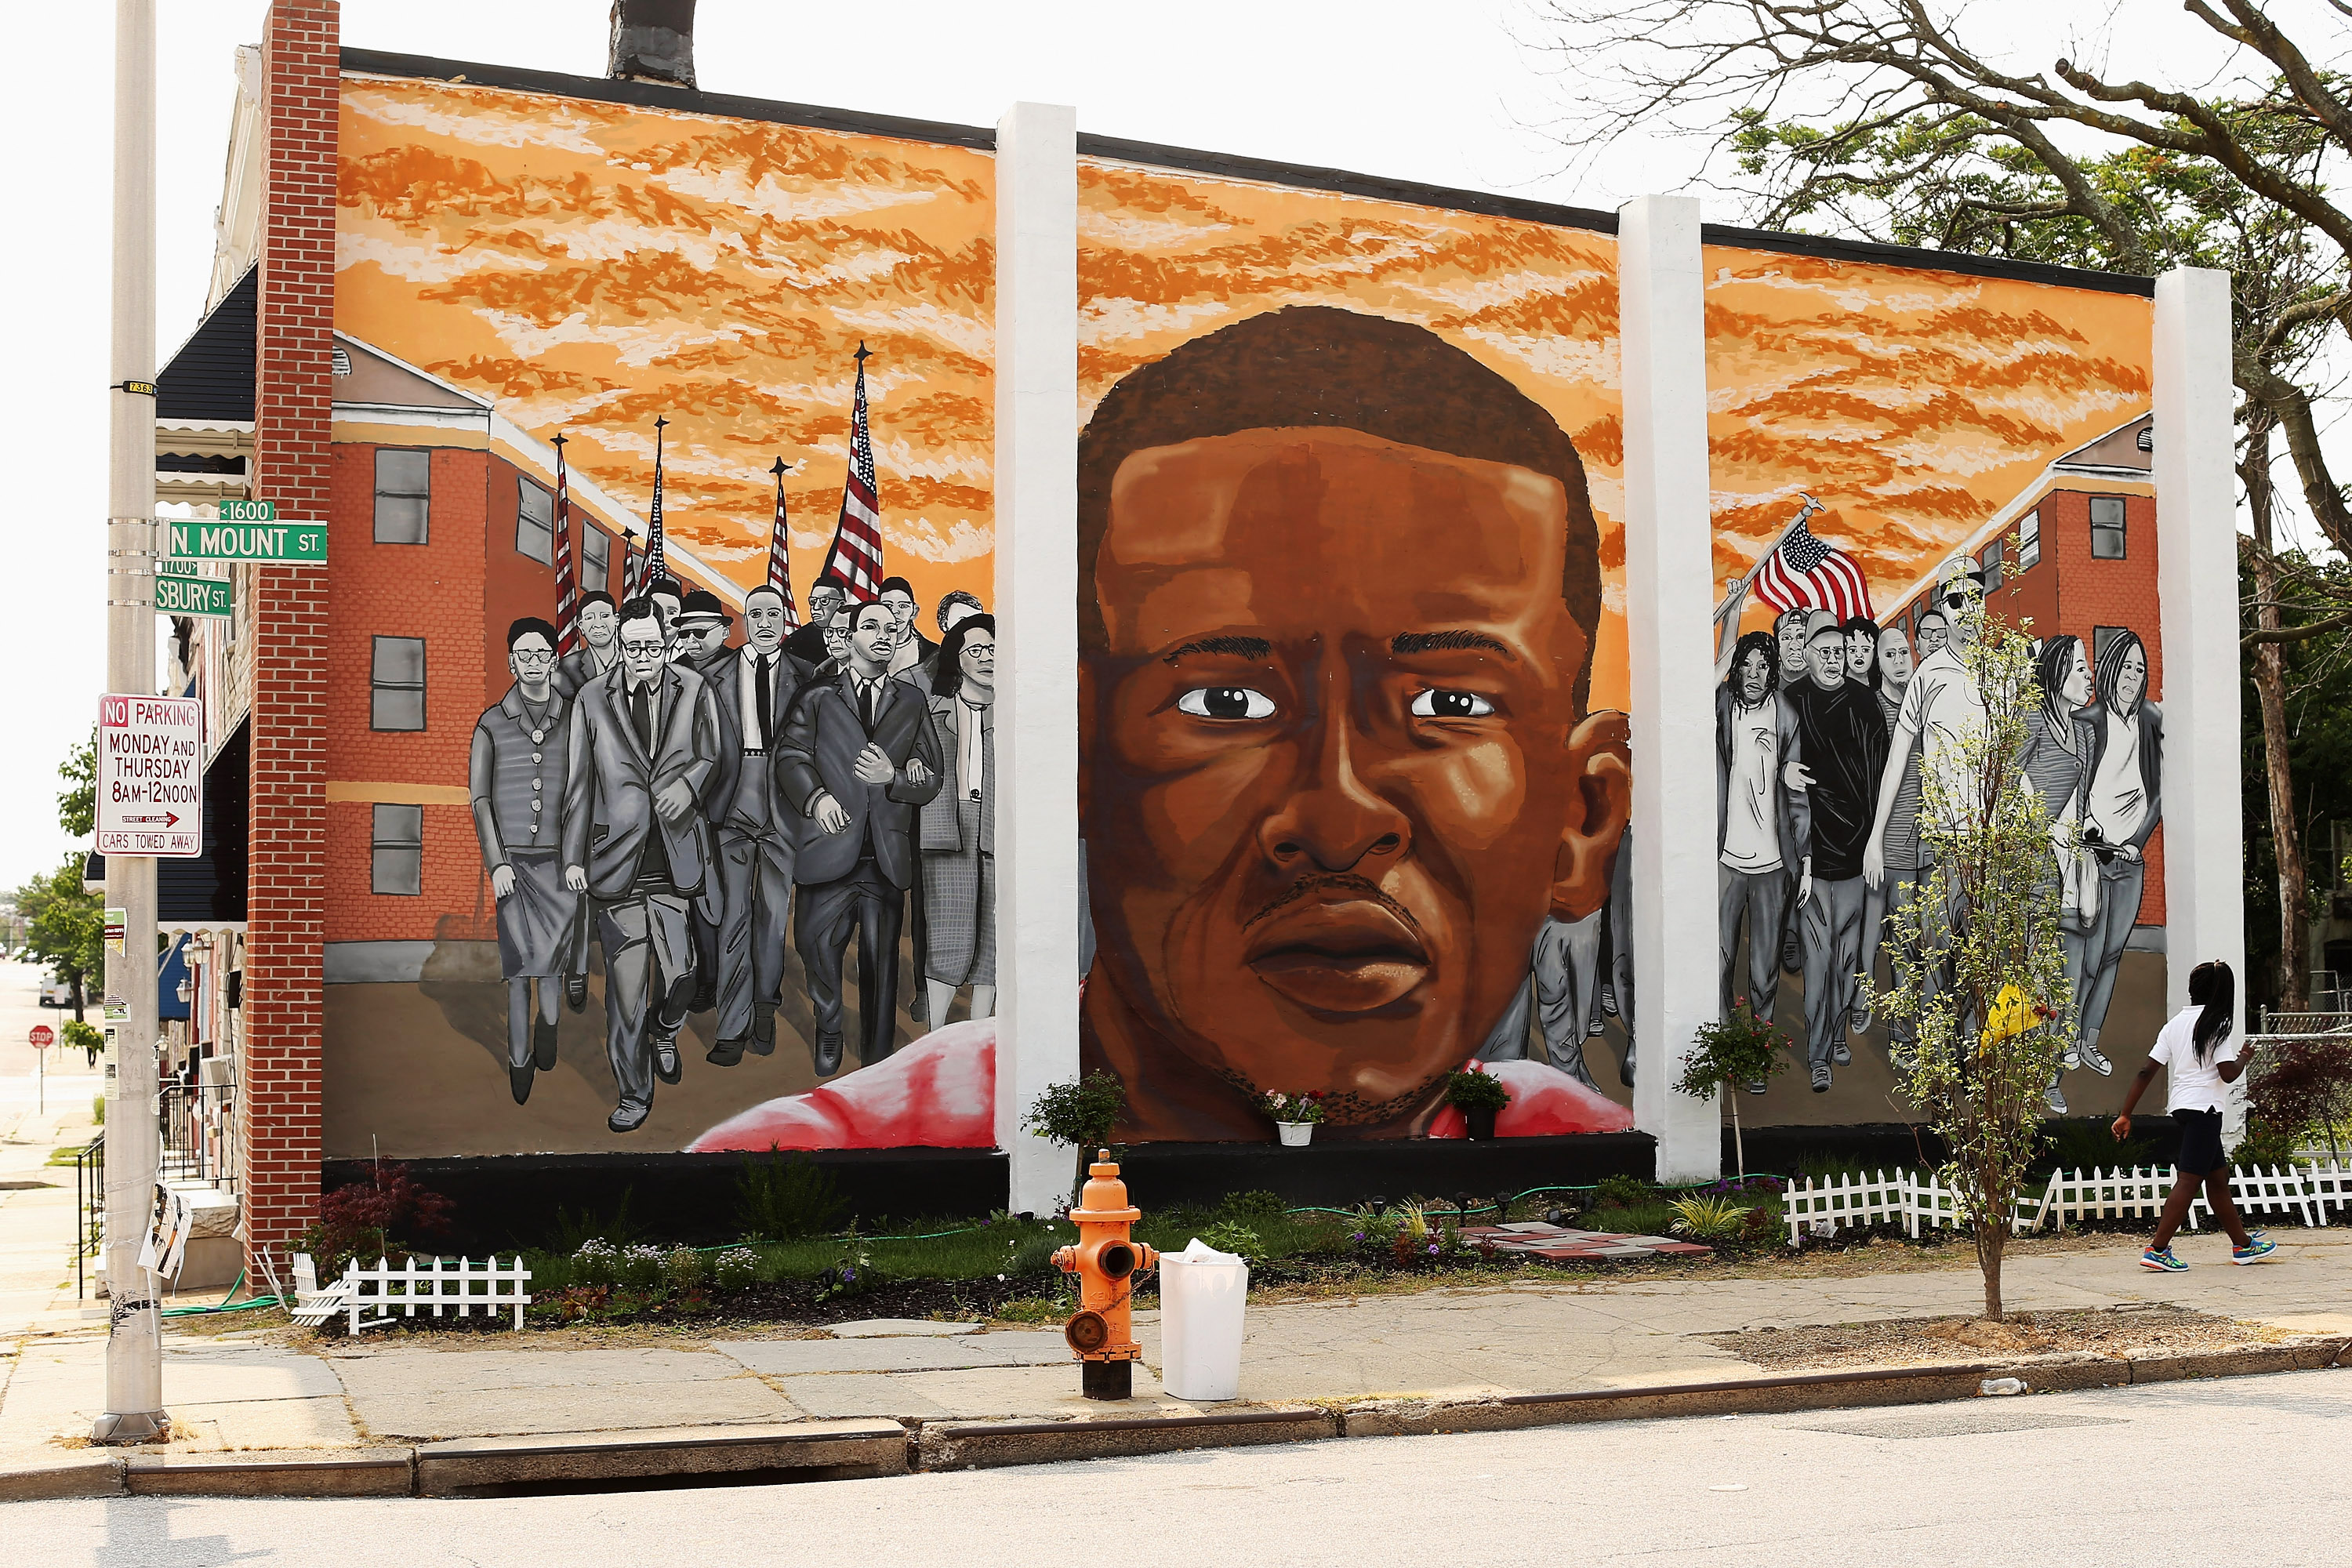 A mural memorializing Baltimore resident Freddie Gray is painted on the wall near the place where he was arrested by police at the Gilmor Homes housing project June 9, 2015 in Baltimore.